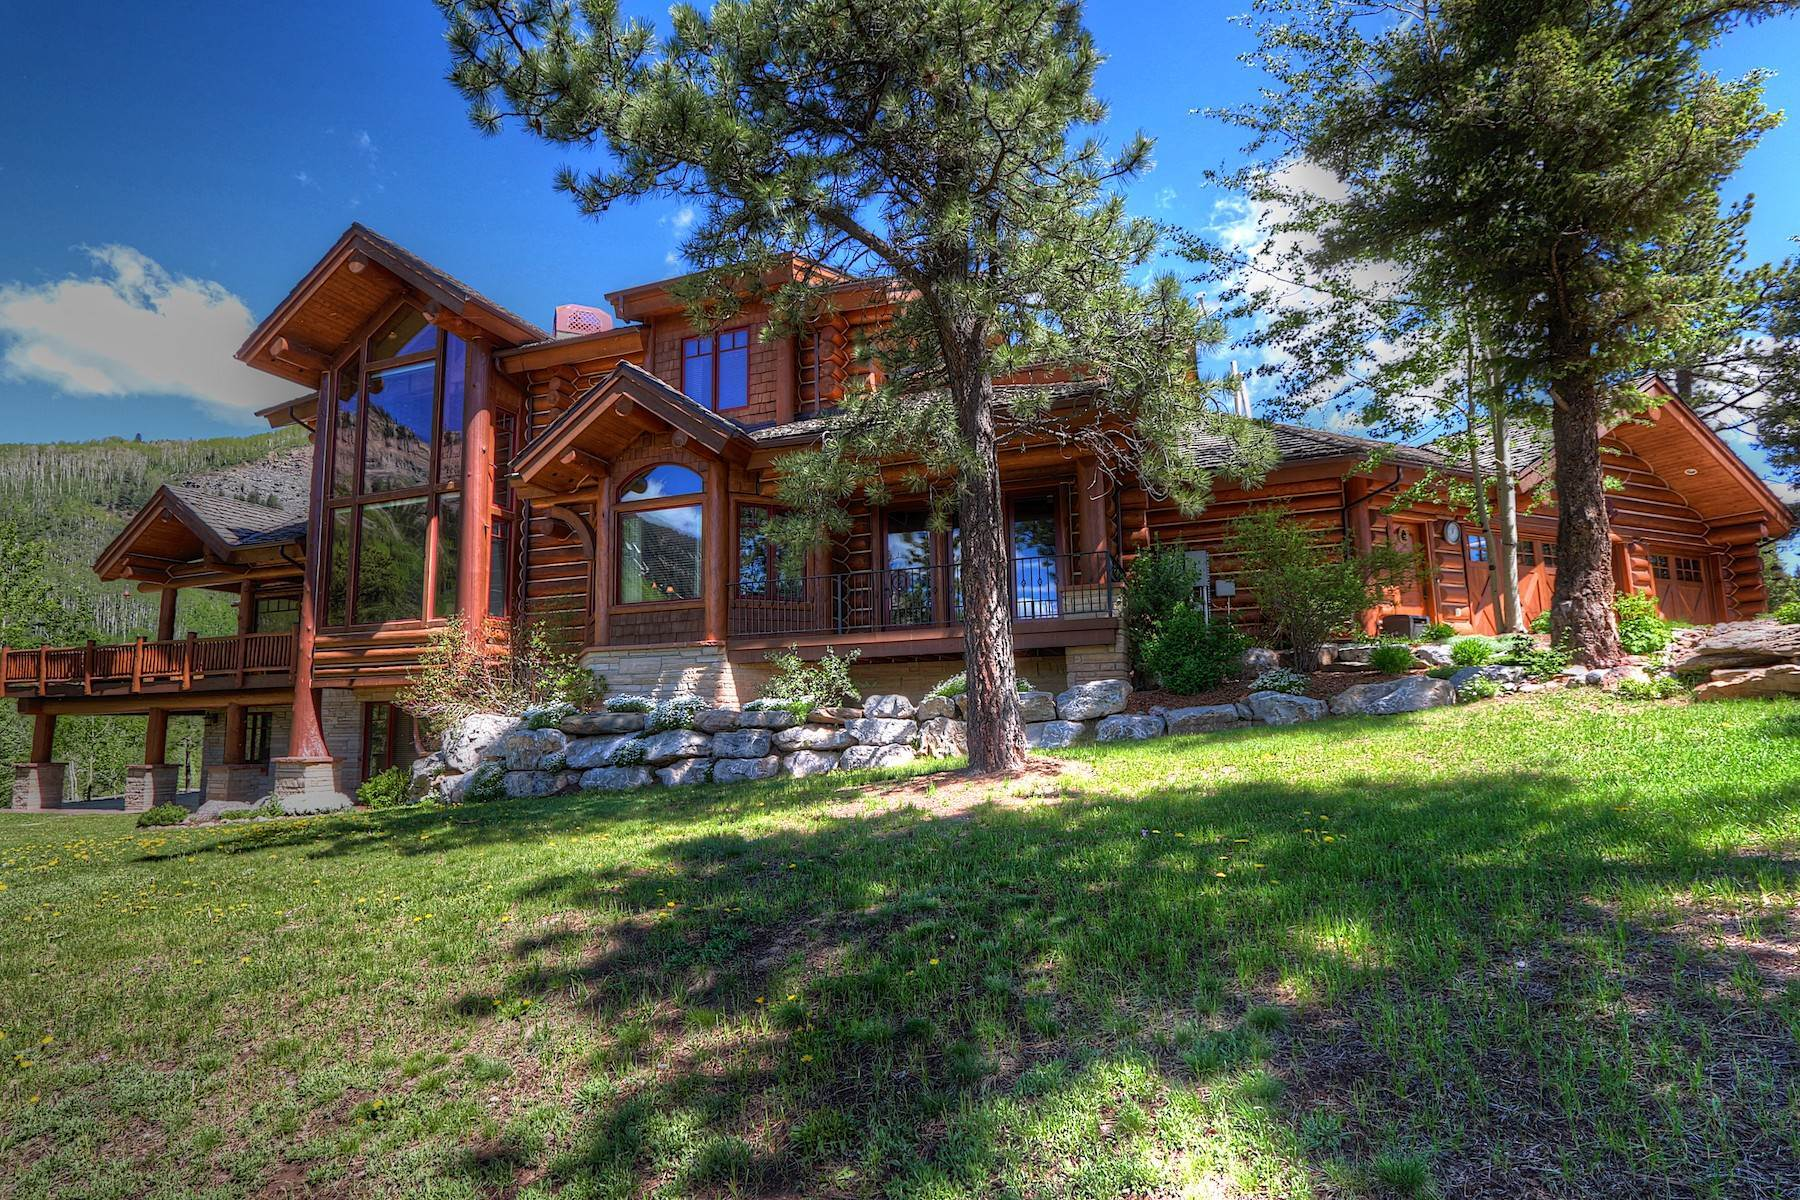 Single Family Homes for Sale at 246 Pinnacle View Drive Durango, Colorado 81301 United States